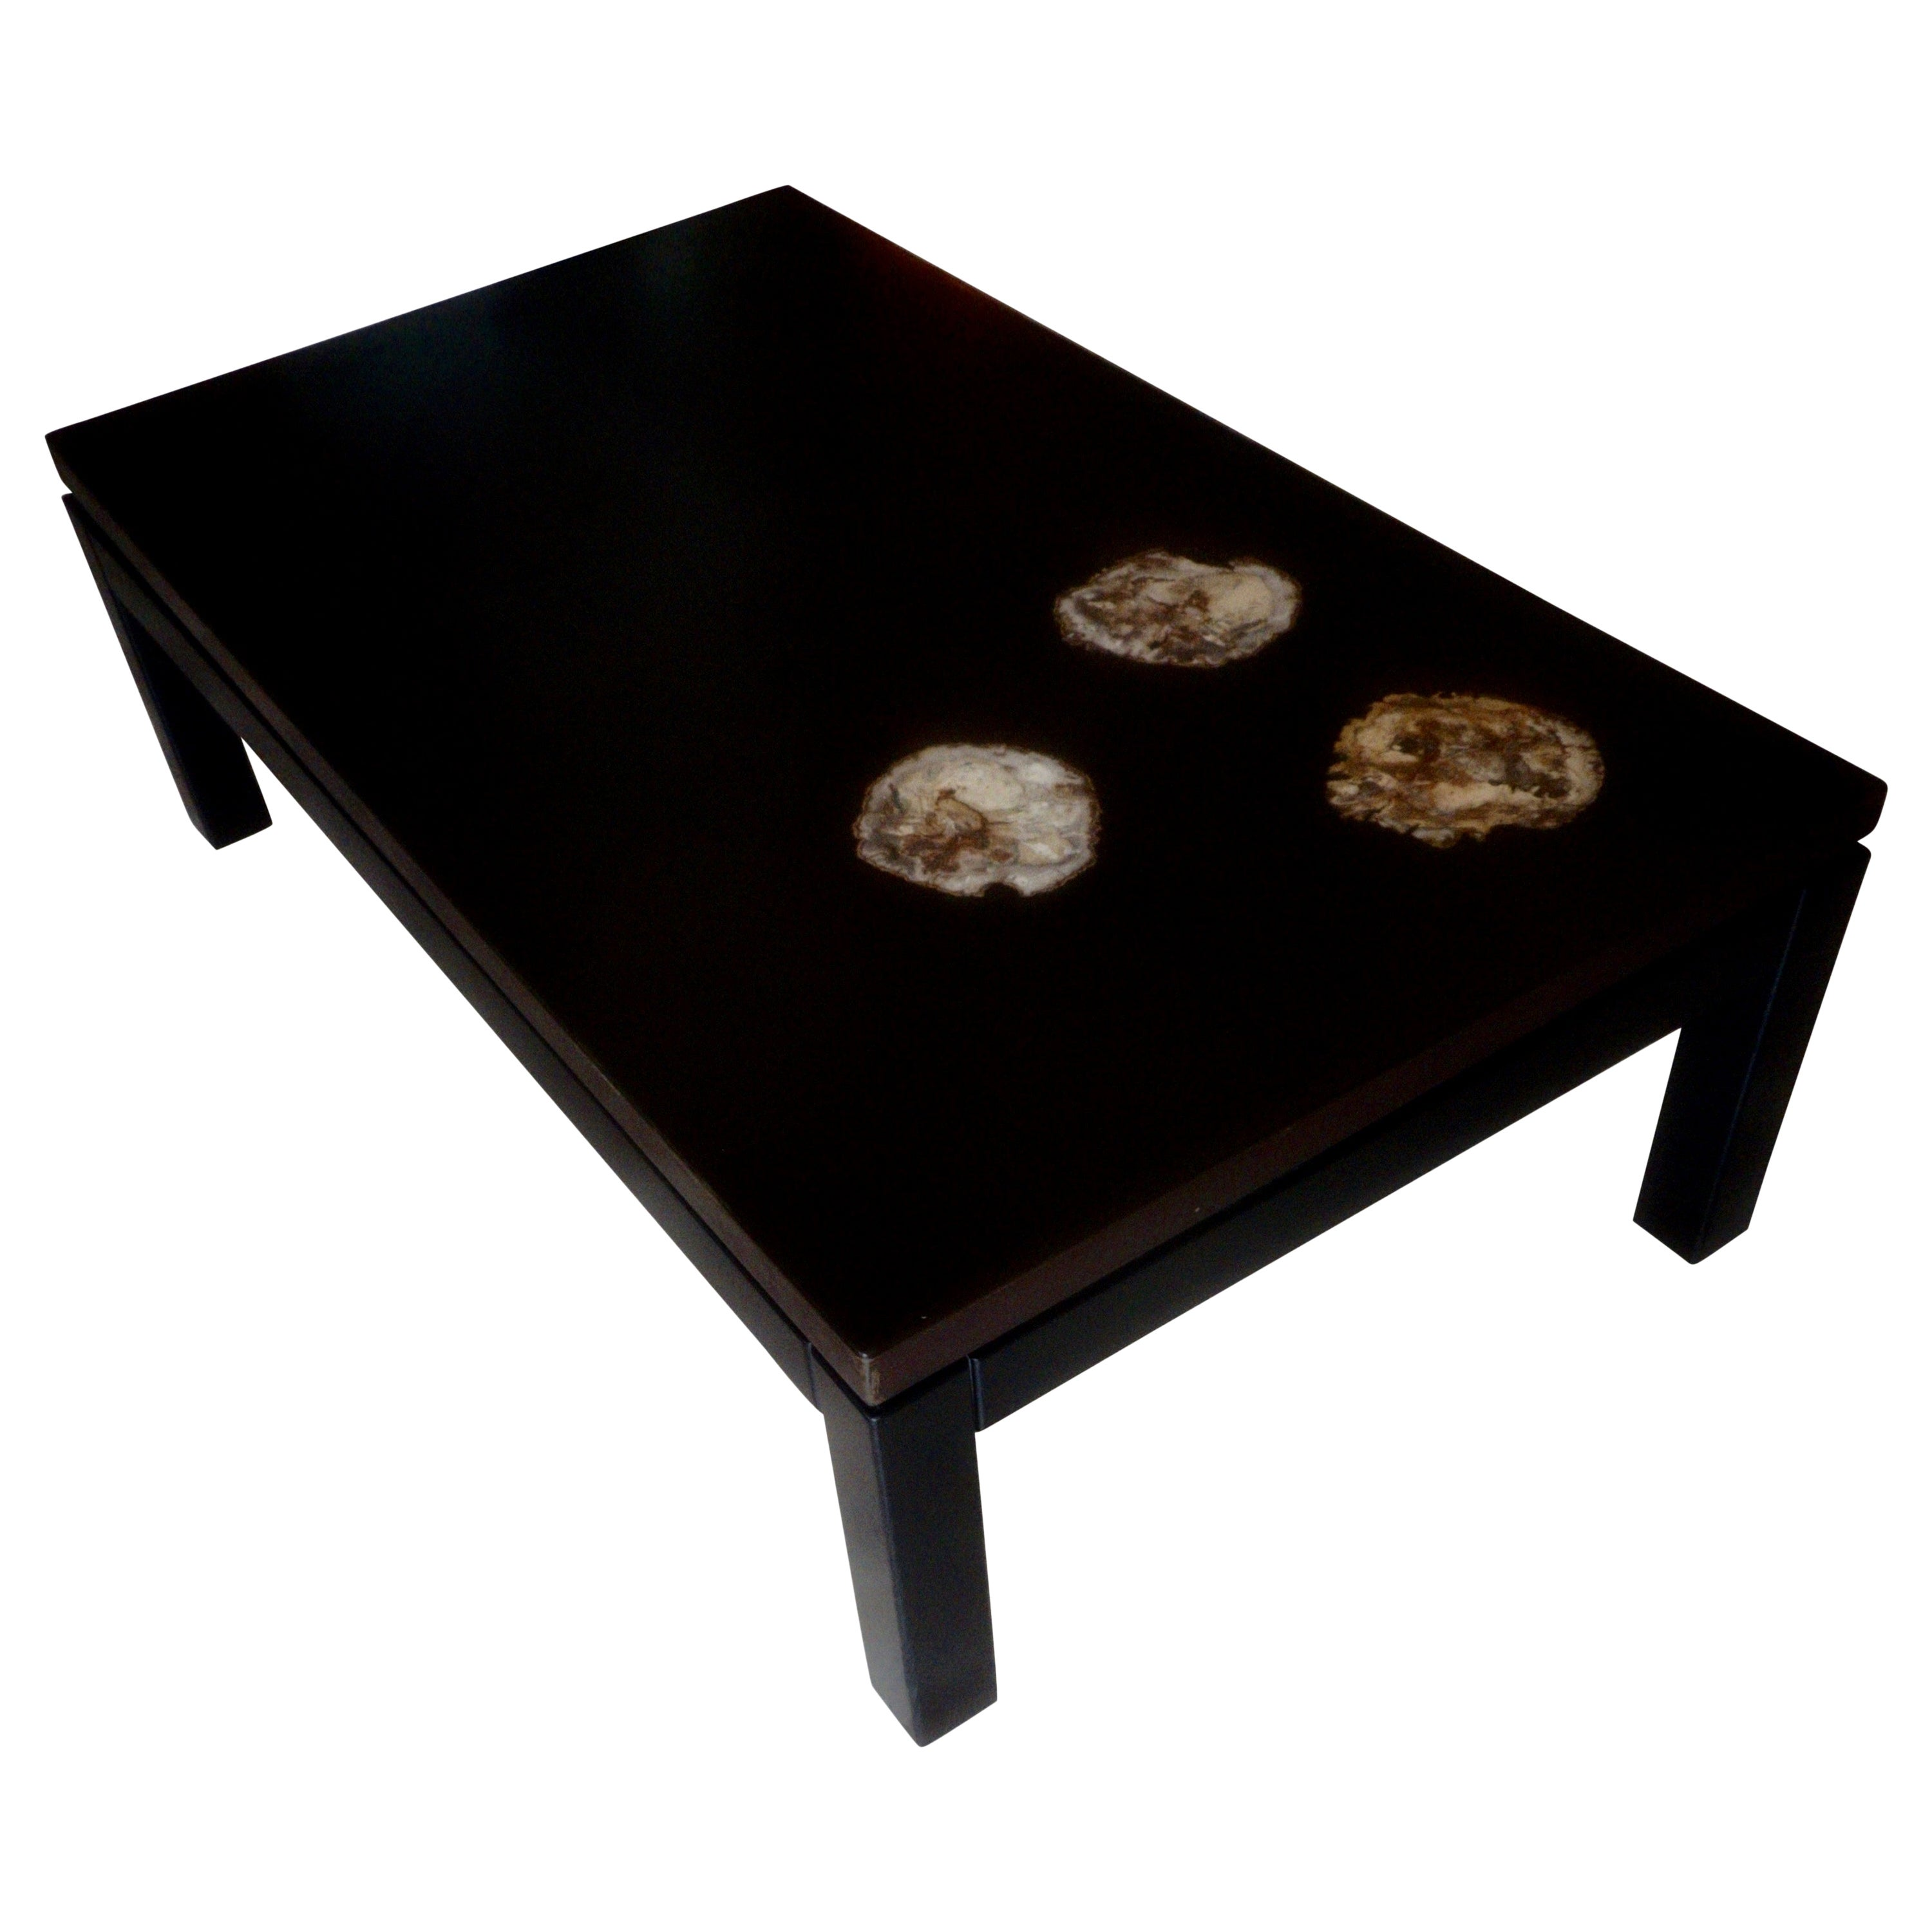 Dark Brown Resin Table with Petrified Wood Inclusions, Belgium, 1970